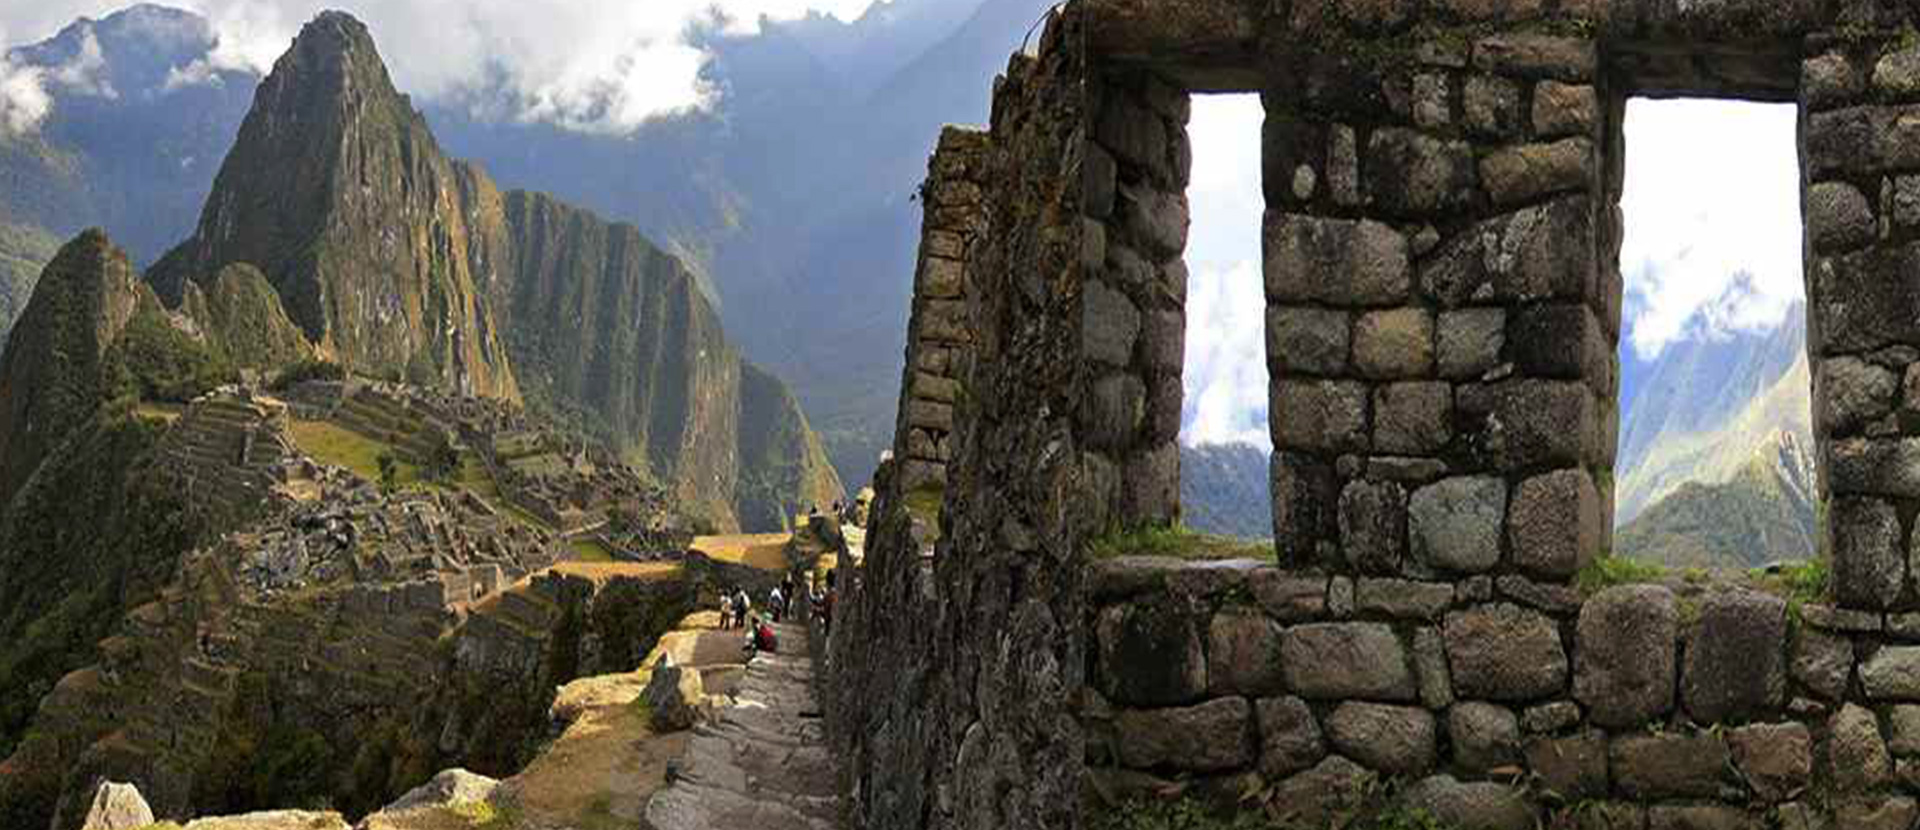 Tours Machu Picchu Full Day - Inka Jungle Trek